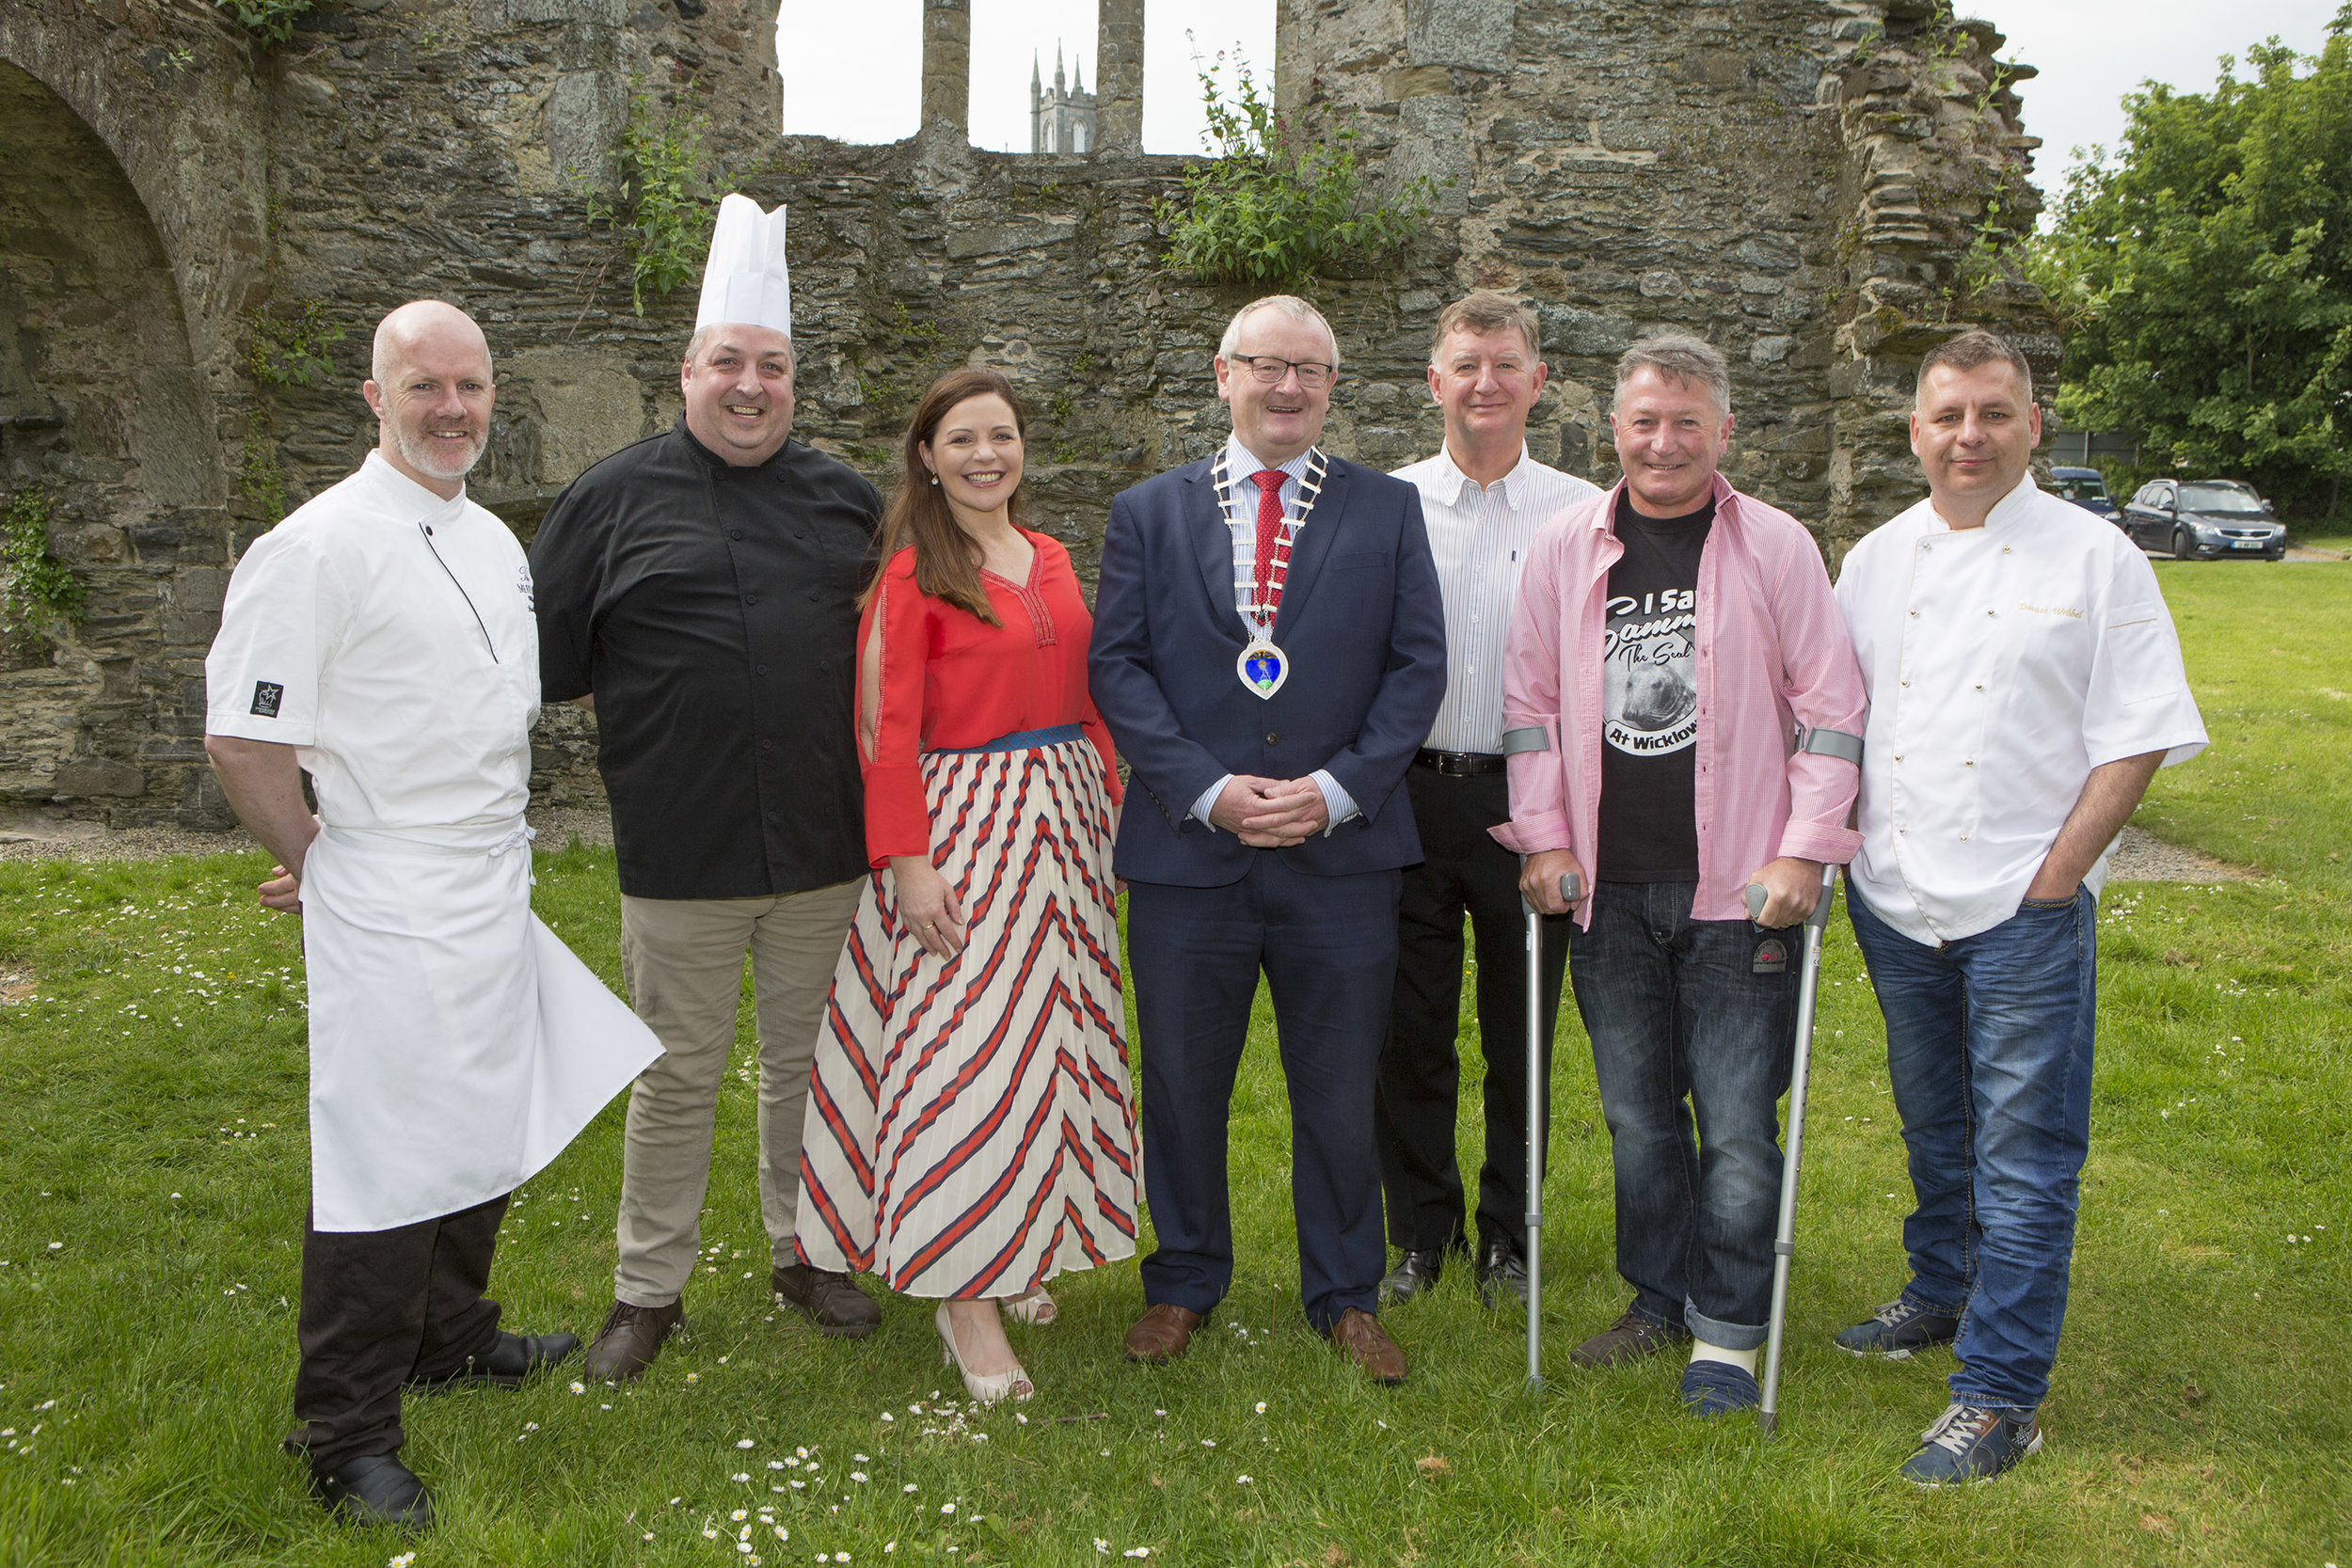 Taste of Wicklow Launch 2018, Left to Right: Paul Kelly, Executive Pastry Chef of The Merrion Hotel; Paul Smyth, Head Chef of The Mystic Celt; Robert Kelly, Store Manager of Gallagher's SuperValu; Robin Bradley, President of Wicklow Town and District Chamber; Pascal Burke, Taste of Wicklow 2018 Chairman; Alan Hegarty, Owner of The Lighthouse Restaurant; Diana Sheridan, Taste of Wicklow 2018 Committee Member; Tomasz Wzrobel, Head Chef of The Lighthouse Restaurant.